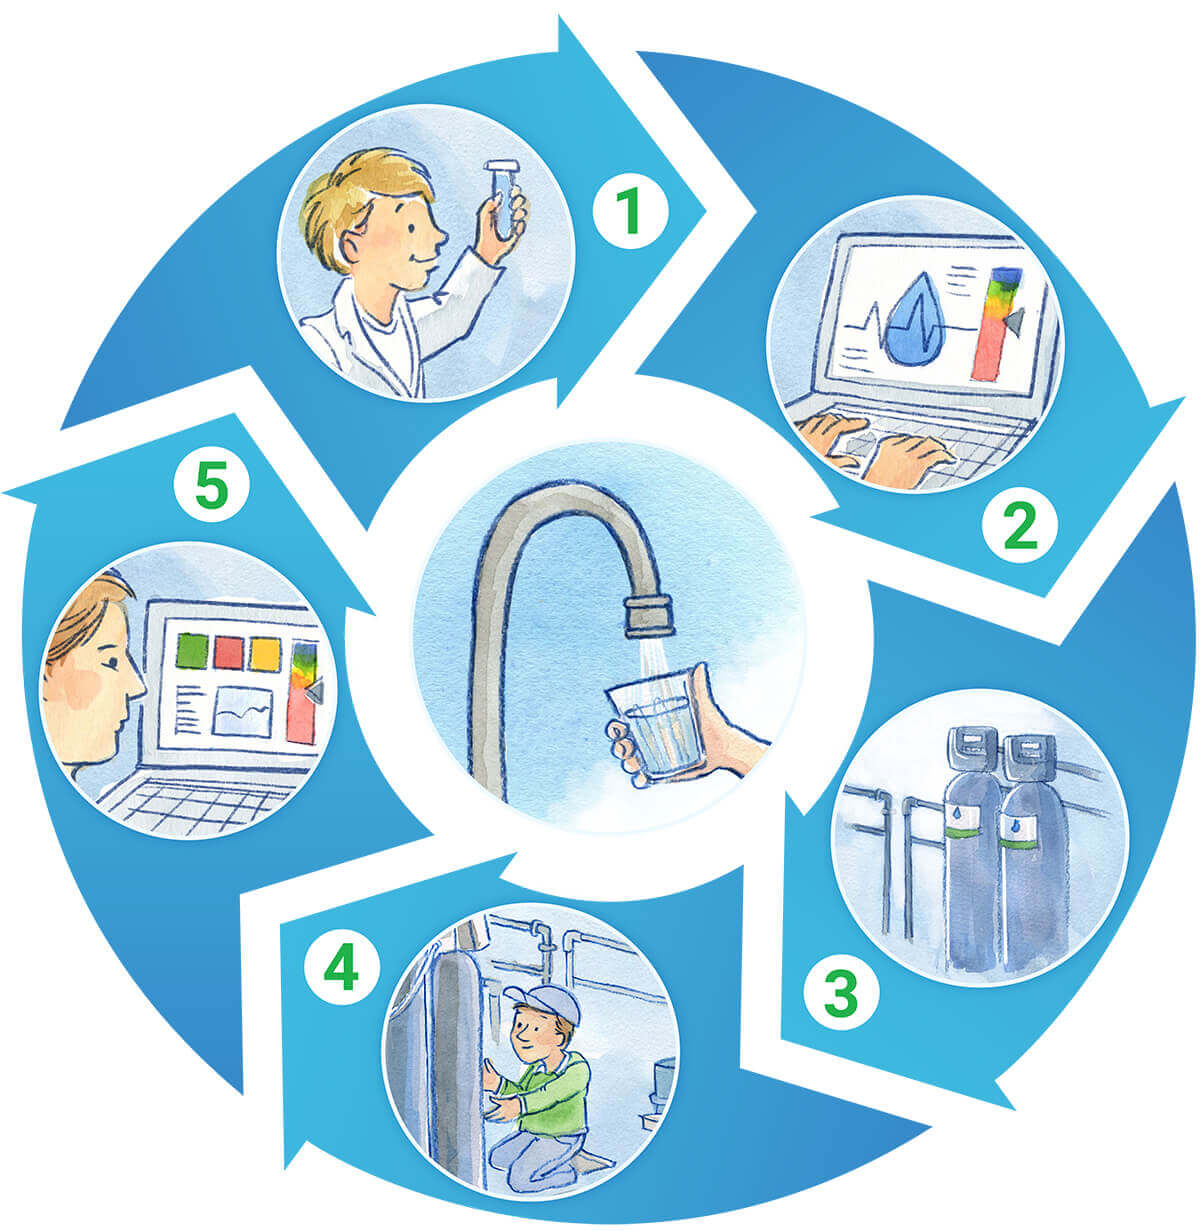 Endpoint TotalCare Water Quality Program, Bolton, MA